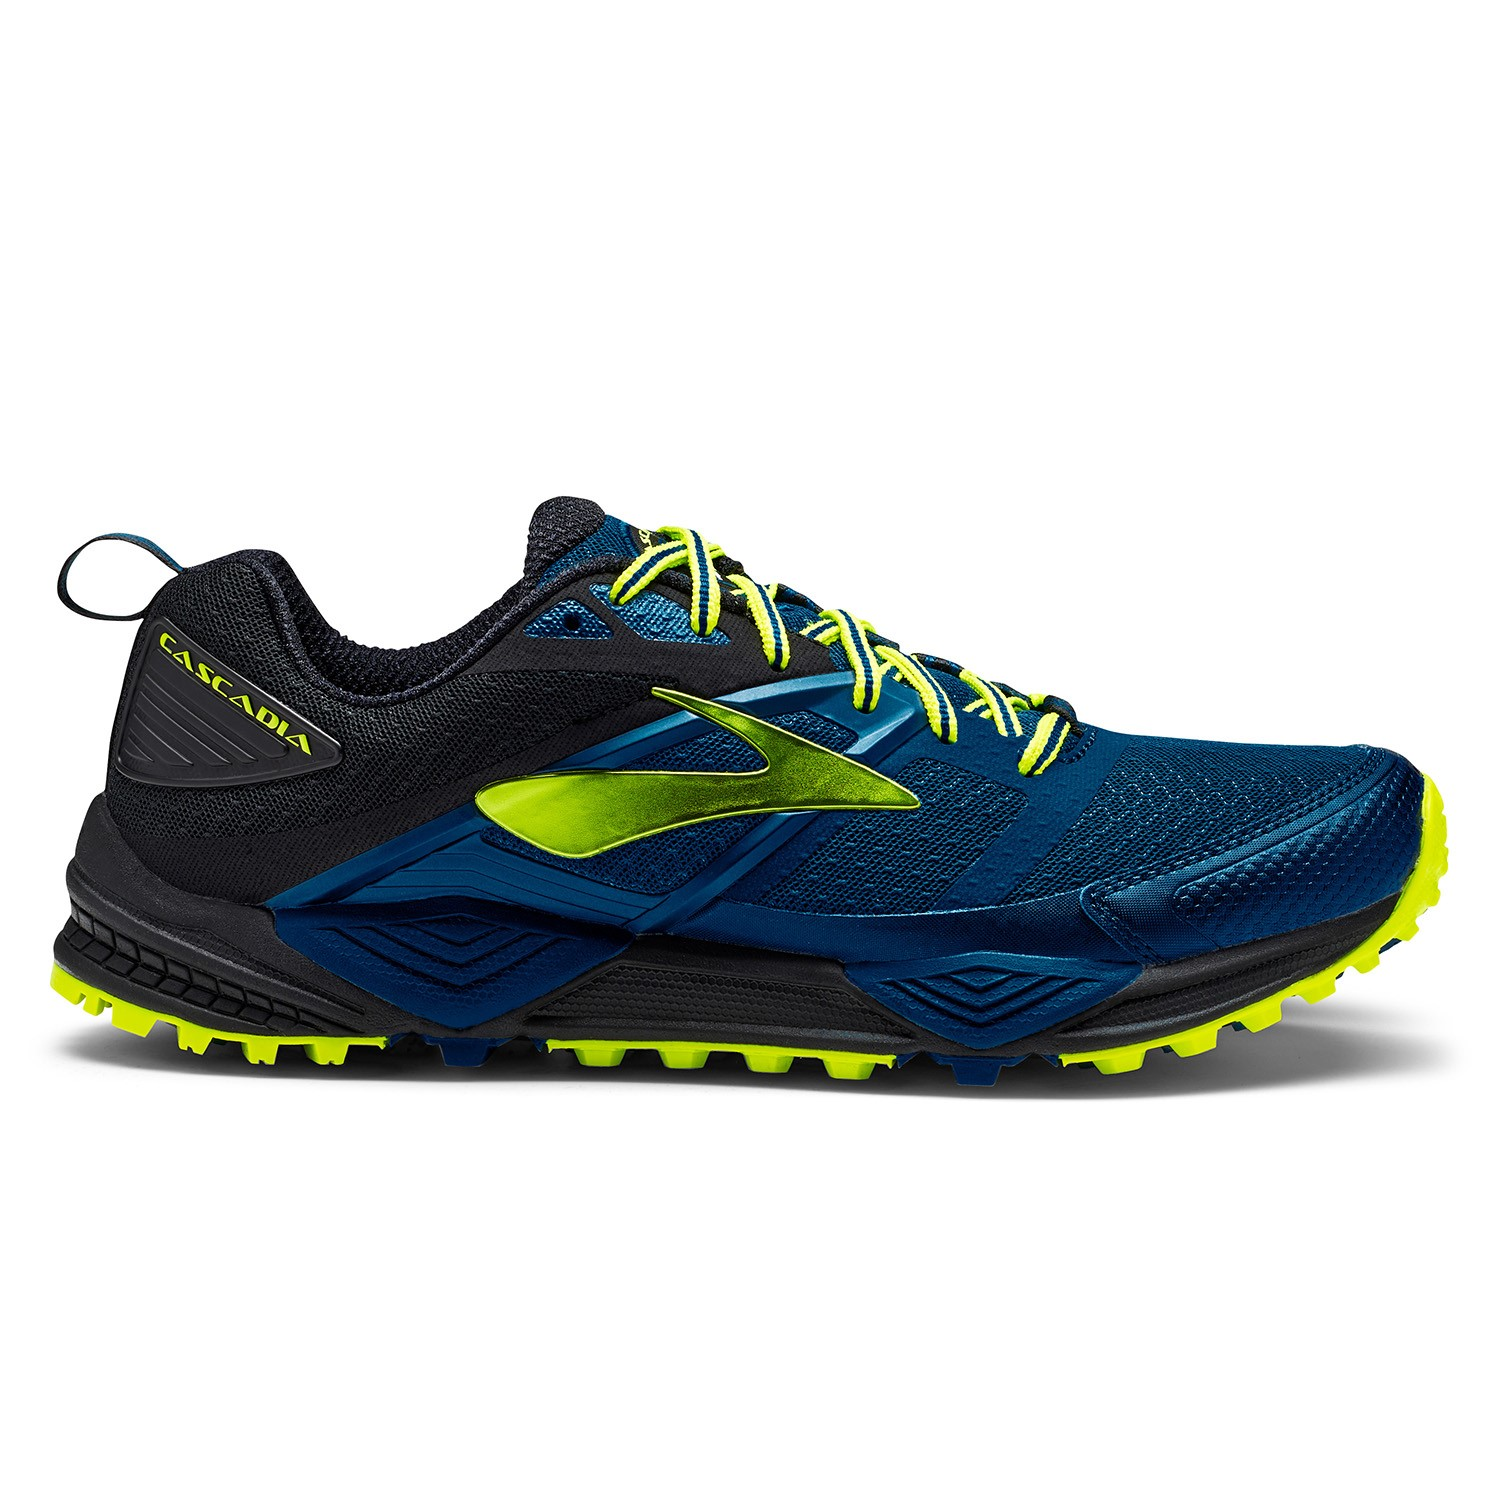 b1c0109e11a Brooks Cascadia 12 - Mens Trail Running Shoes - Blue Black Nightlife ...